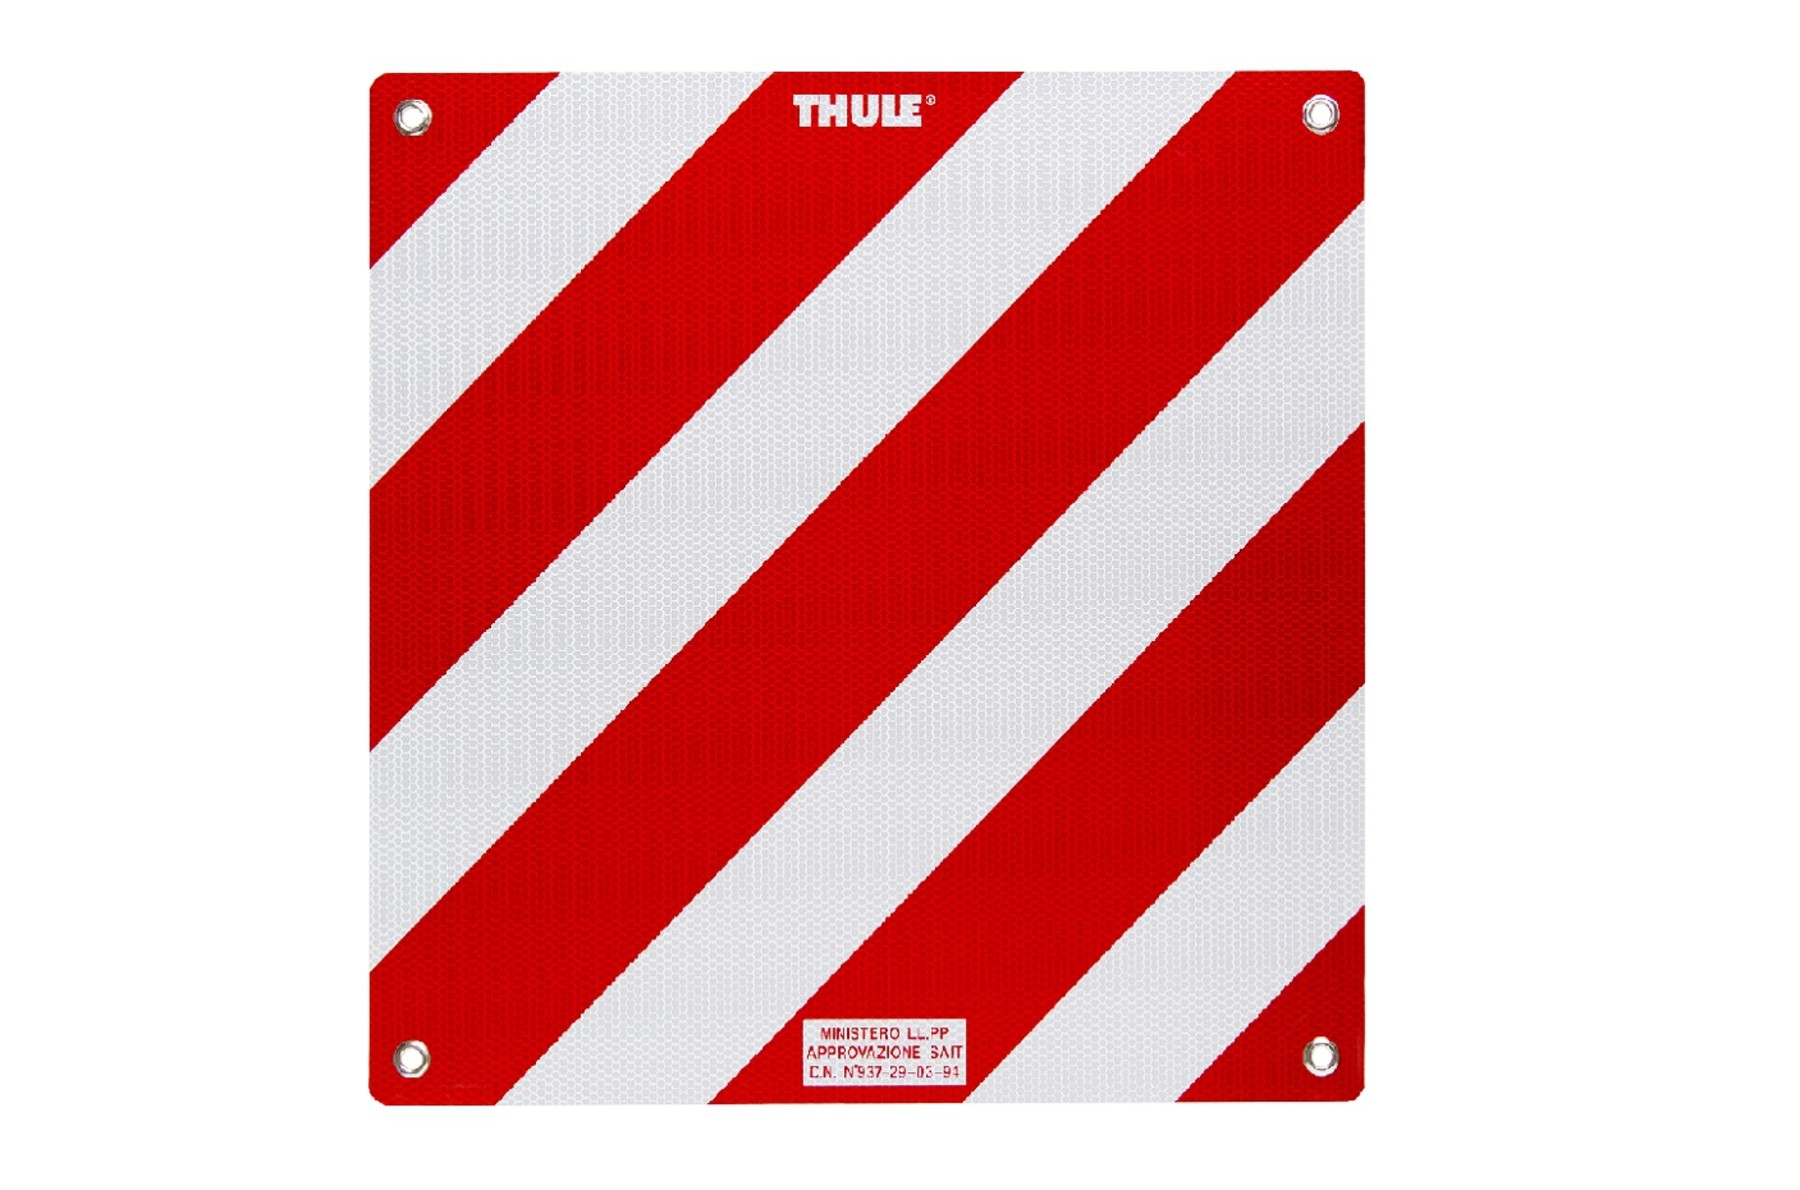 Aluminium rear warning sign for Italy and other European countries